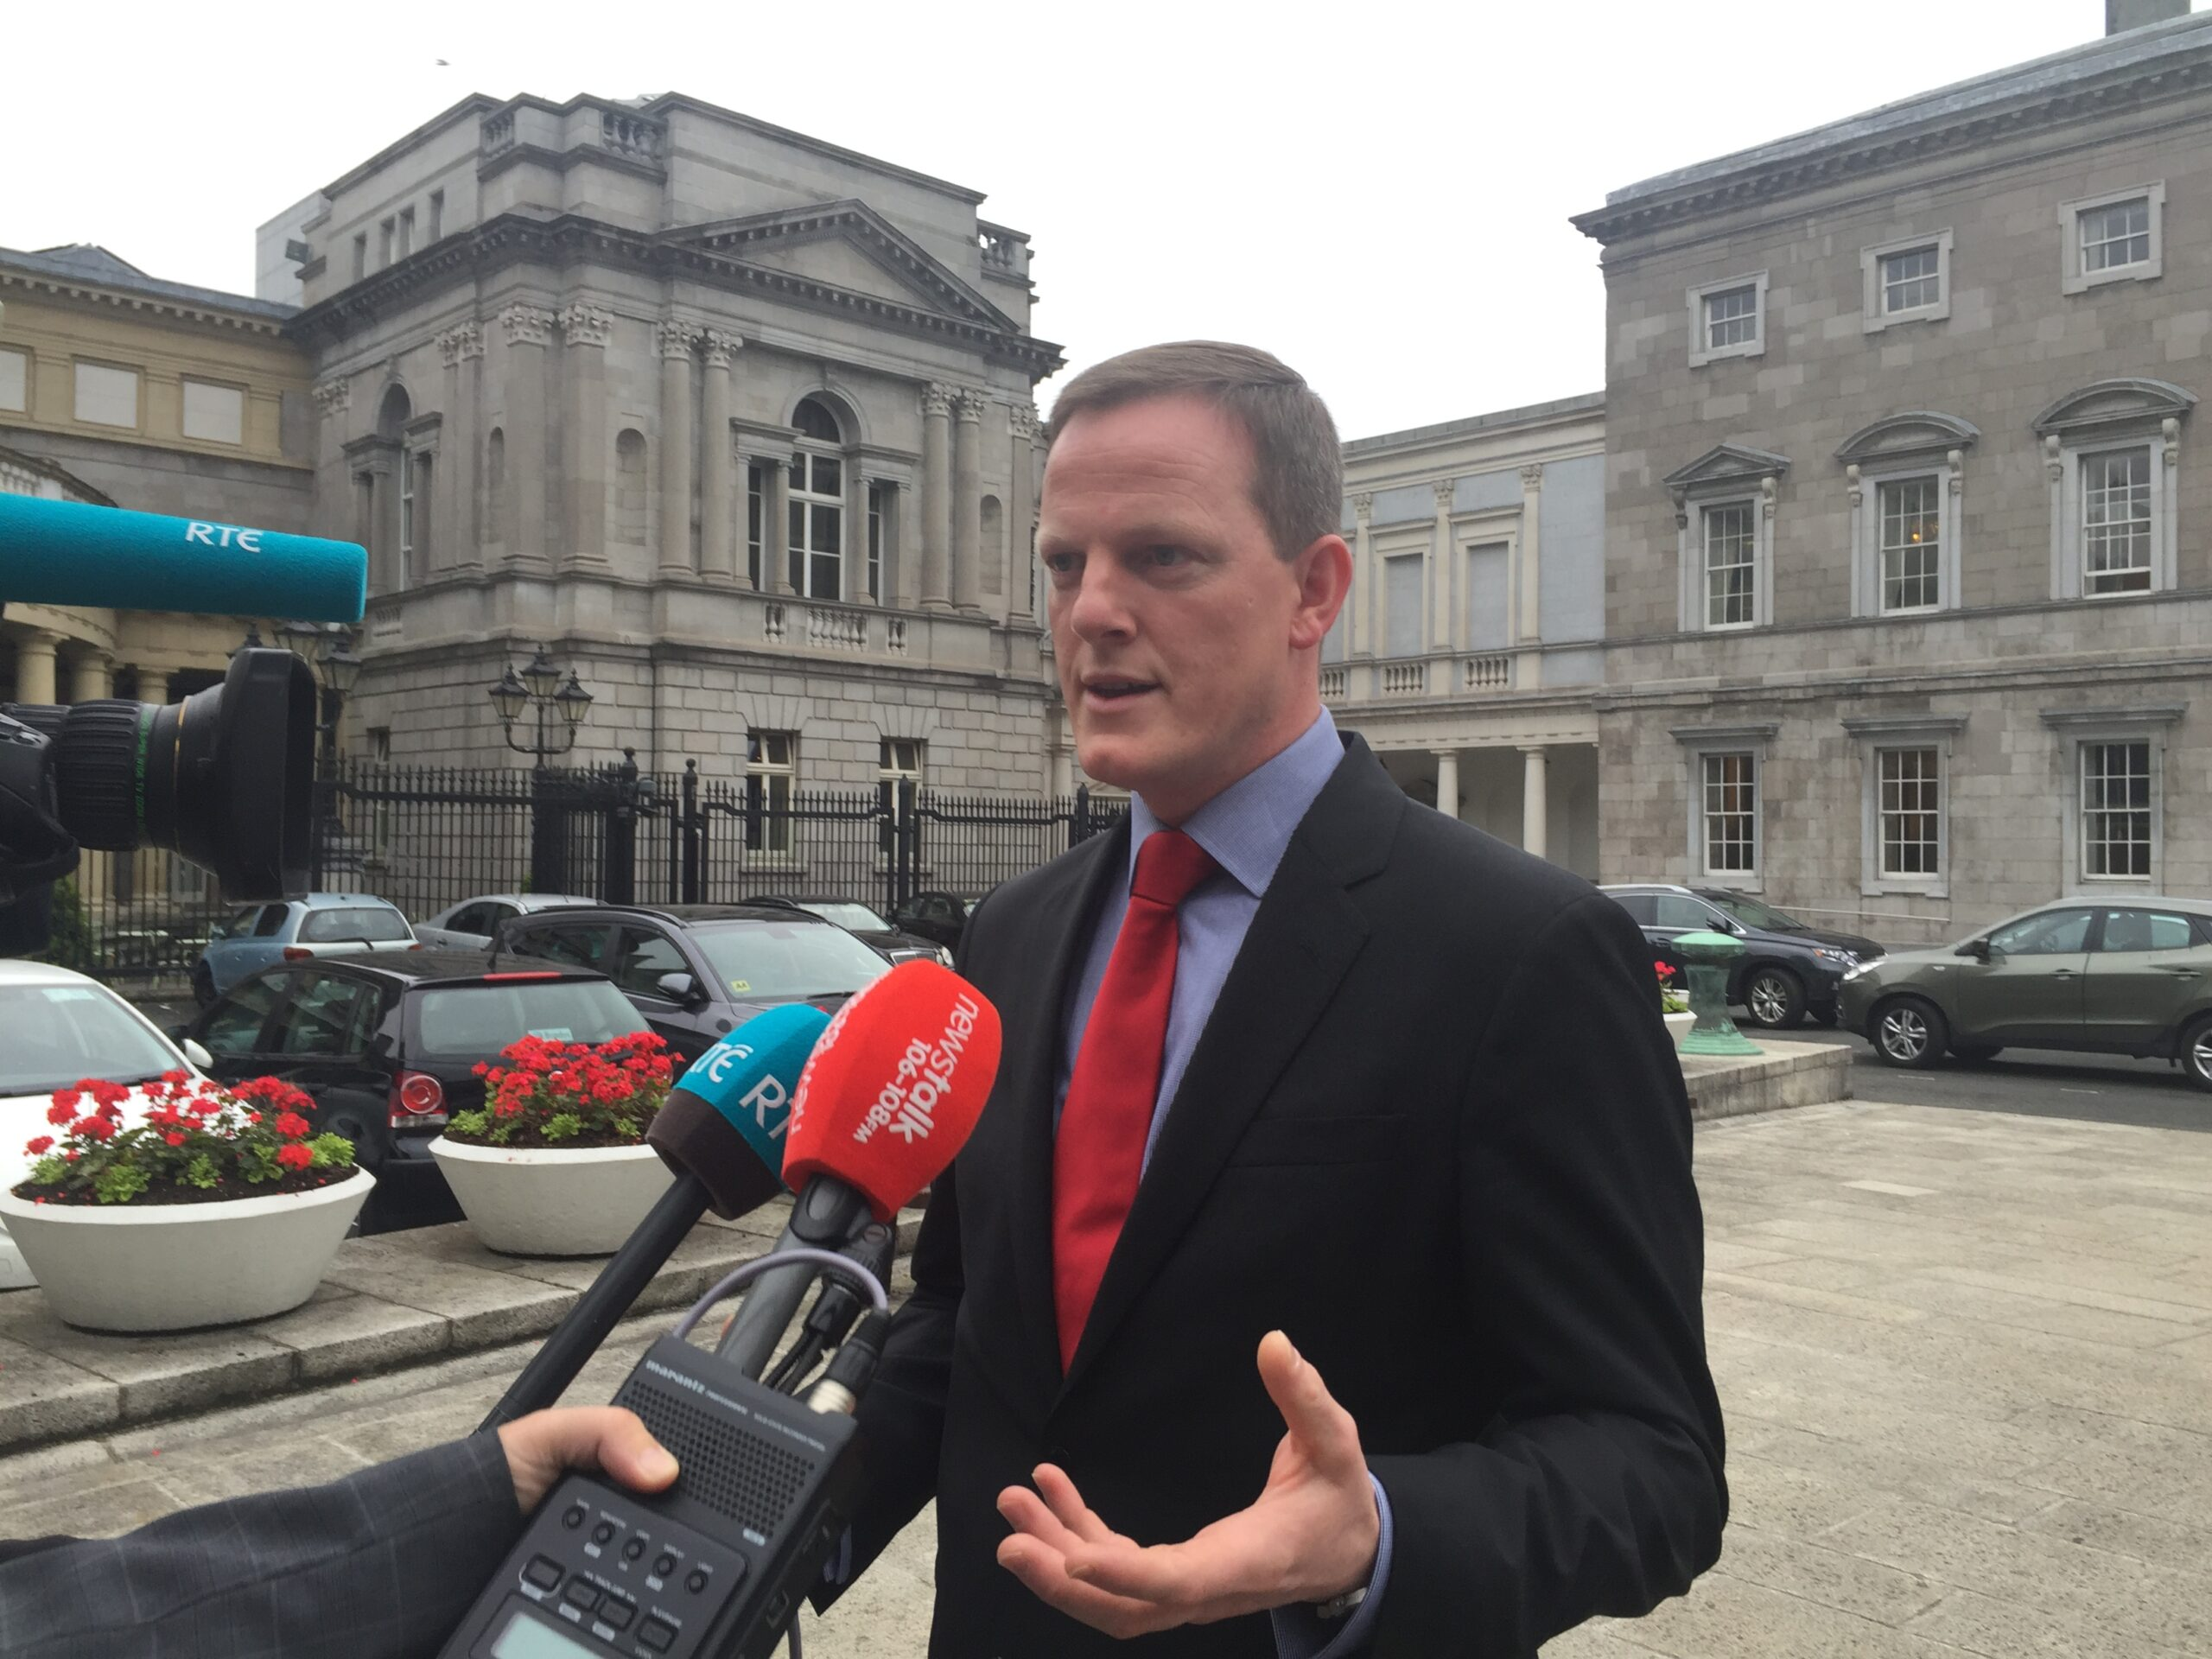 Alan Elected to Dail Eireann to bring Fingal Issues to Leinster House